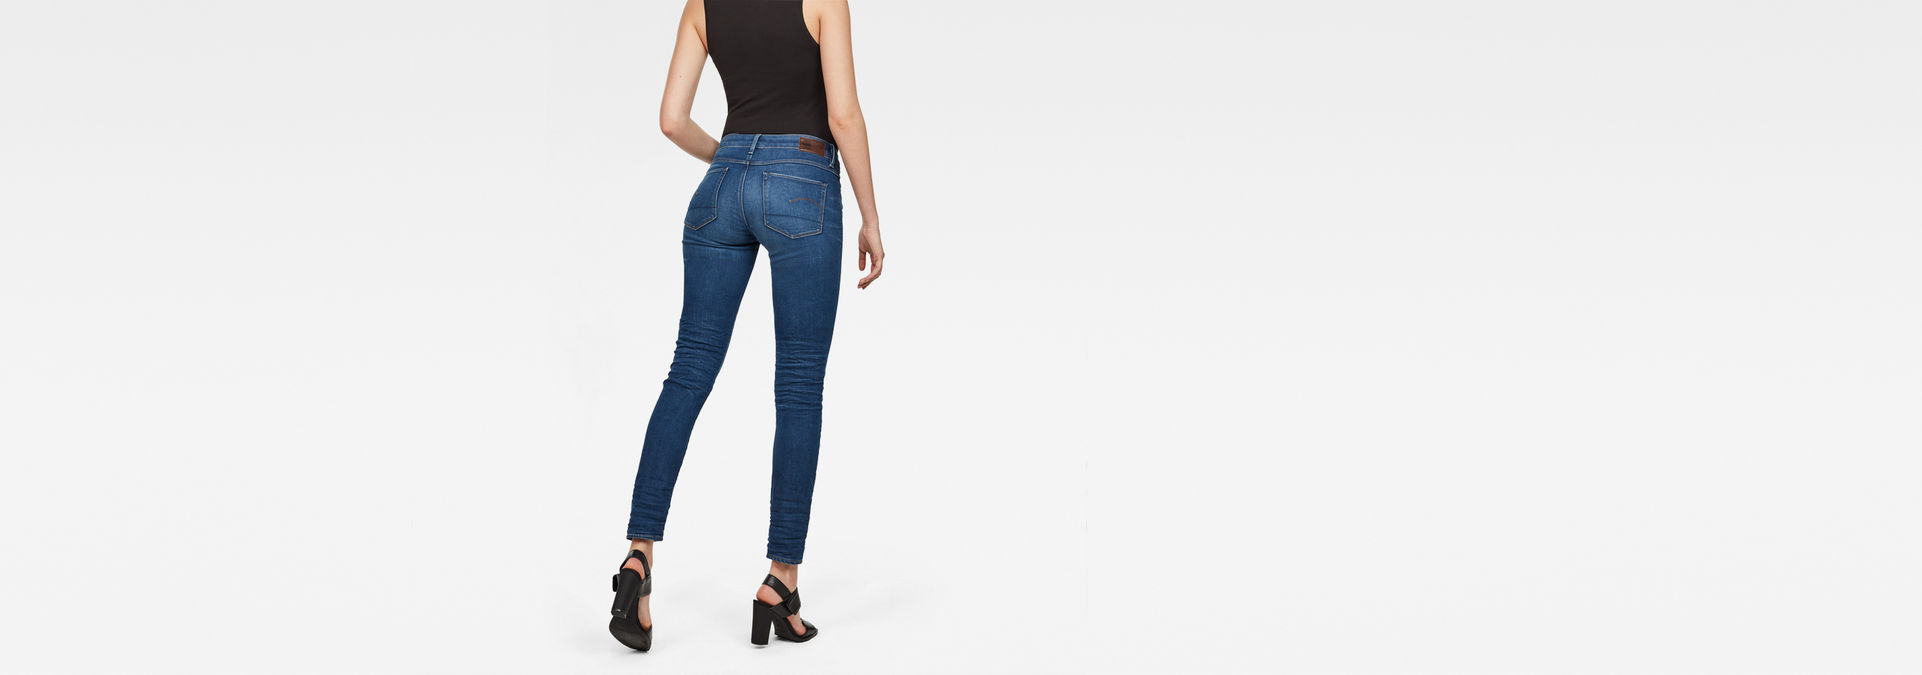 3301 Deconstructed Mid Waist Skinny Jeans | G Star RAW®